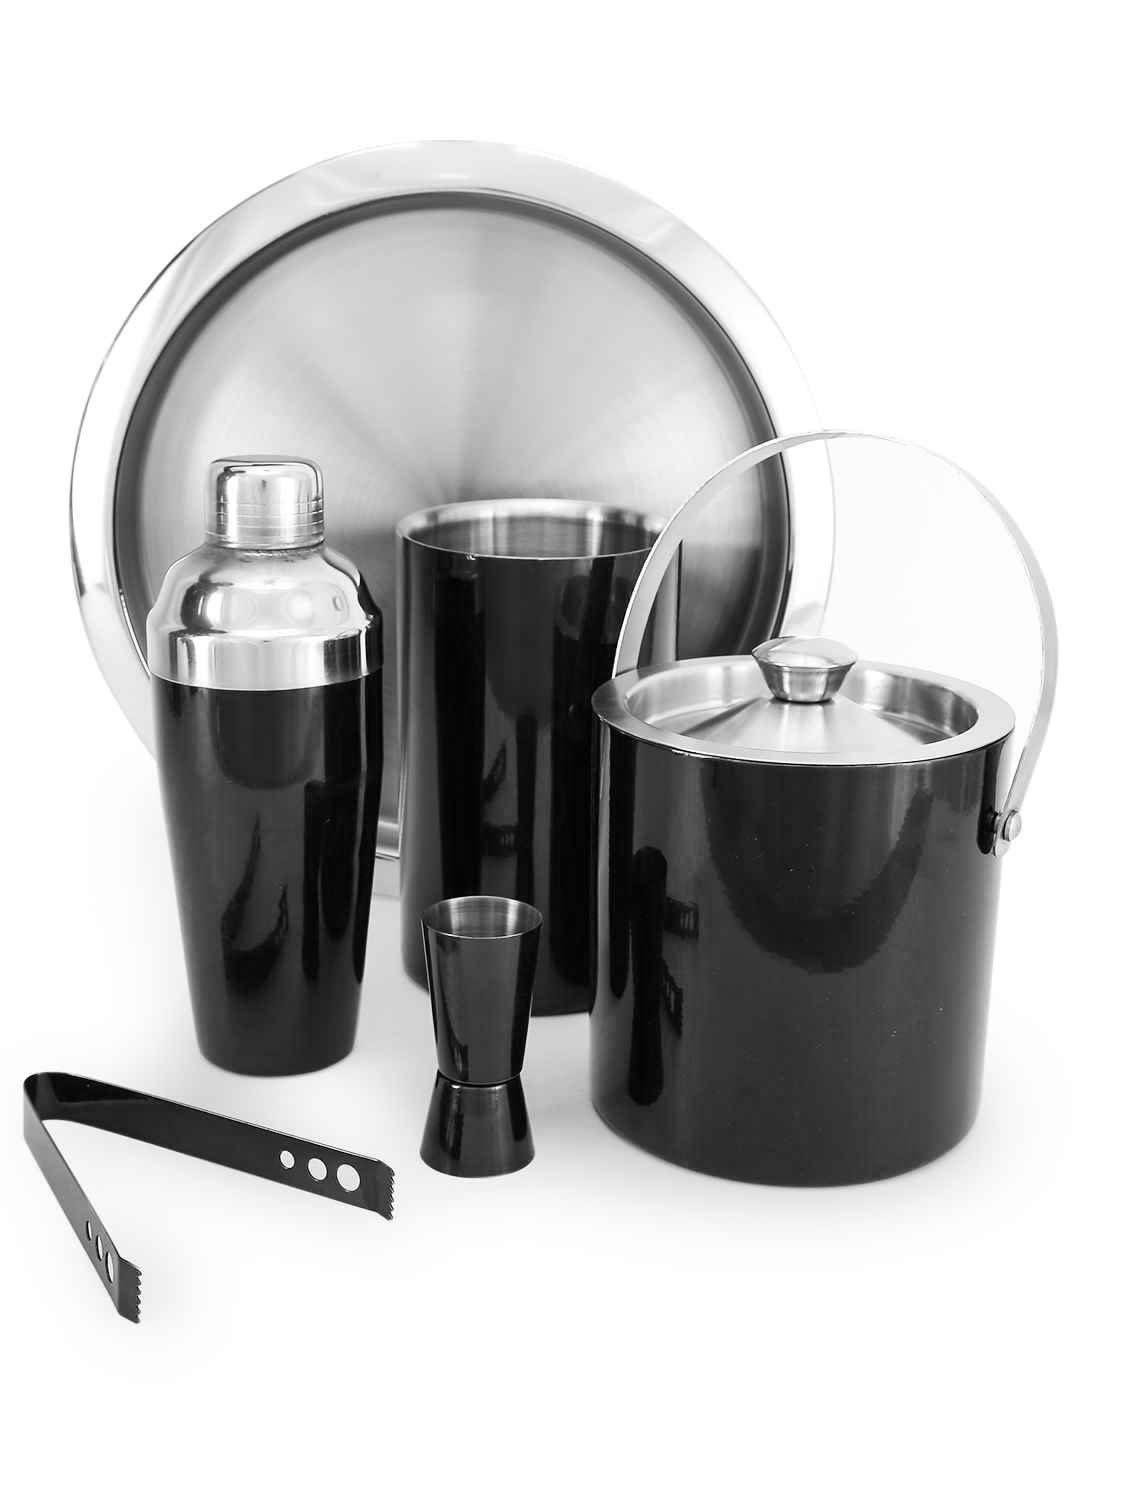 King International 100% Stainless Steel Black Bar Set,Bar Tools,Bar Accessories, 6 Pieces,Ice Bucket 1750 ml,Tong 16.5 cm,Cocktail Shaker 750 ml,Jigger 4.4 cm,Bar Tray,Wine Cooler 12 cm